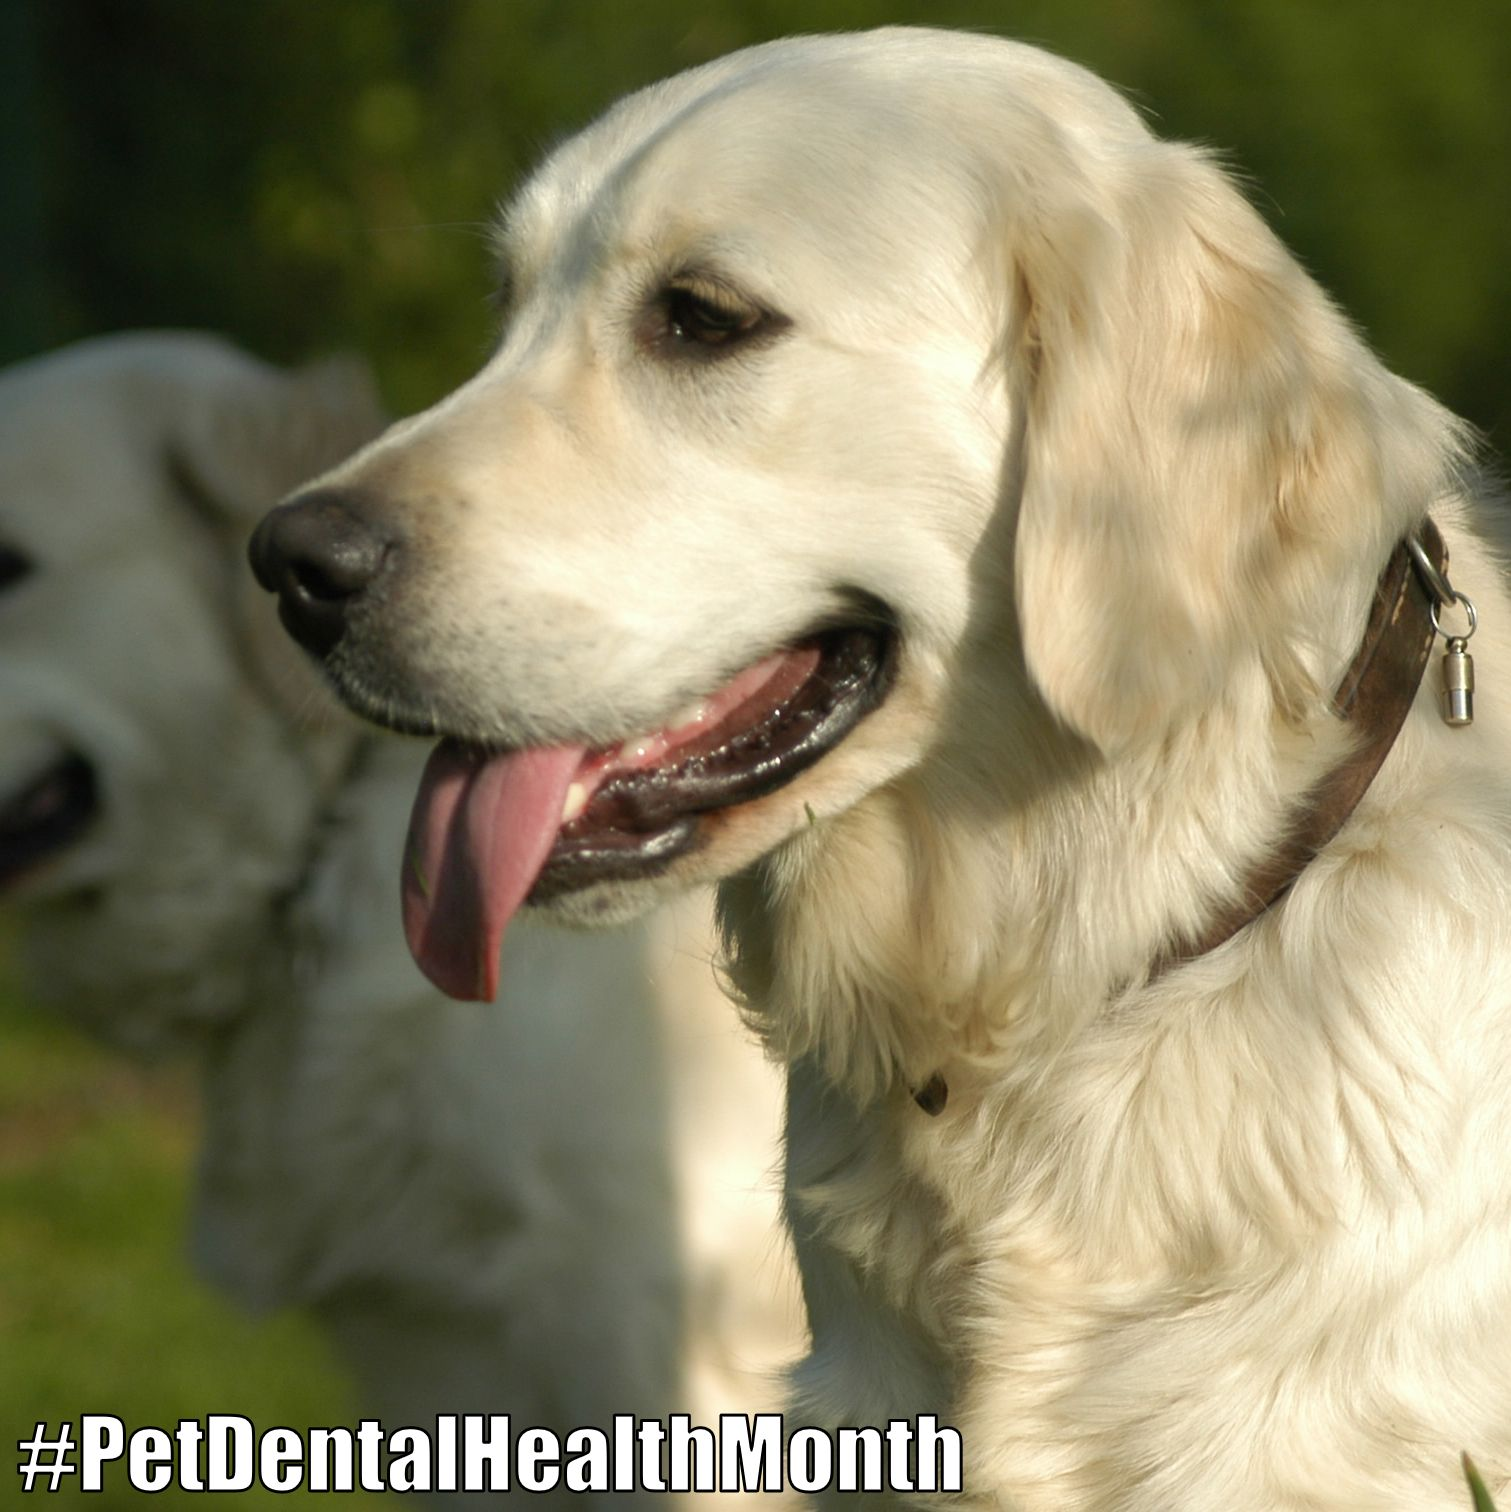 Bacteria Plaque Forming Foods Can Cause Build Up On A Dog S